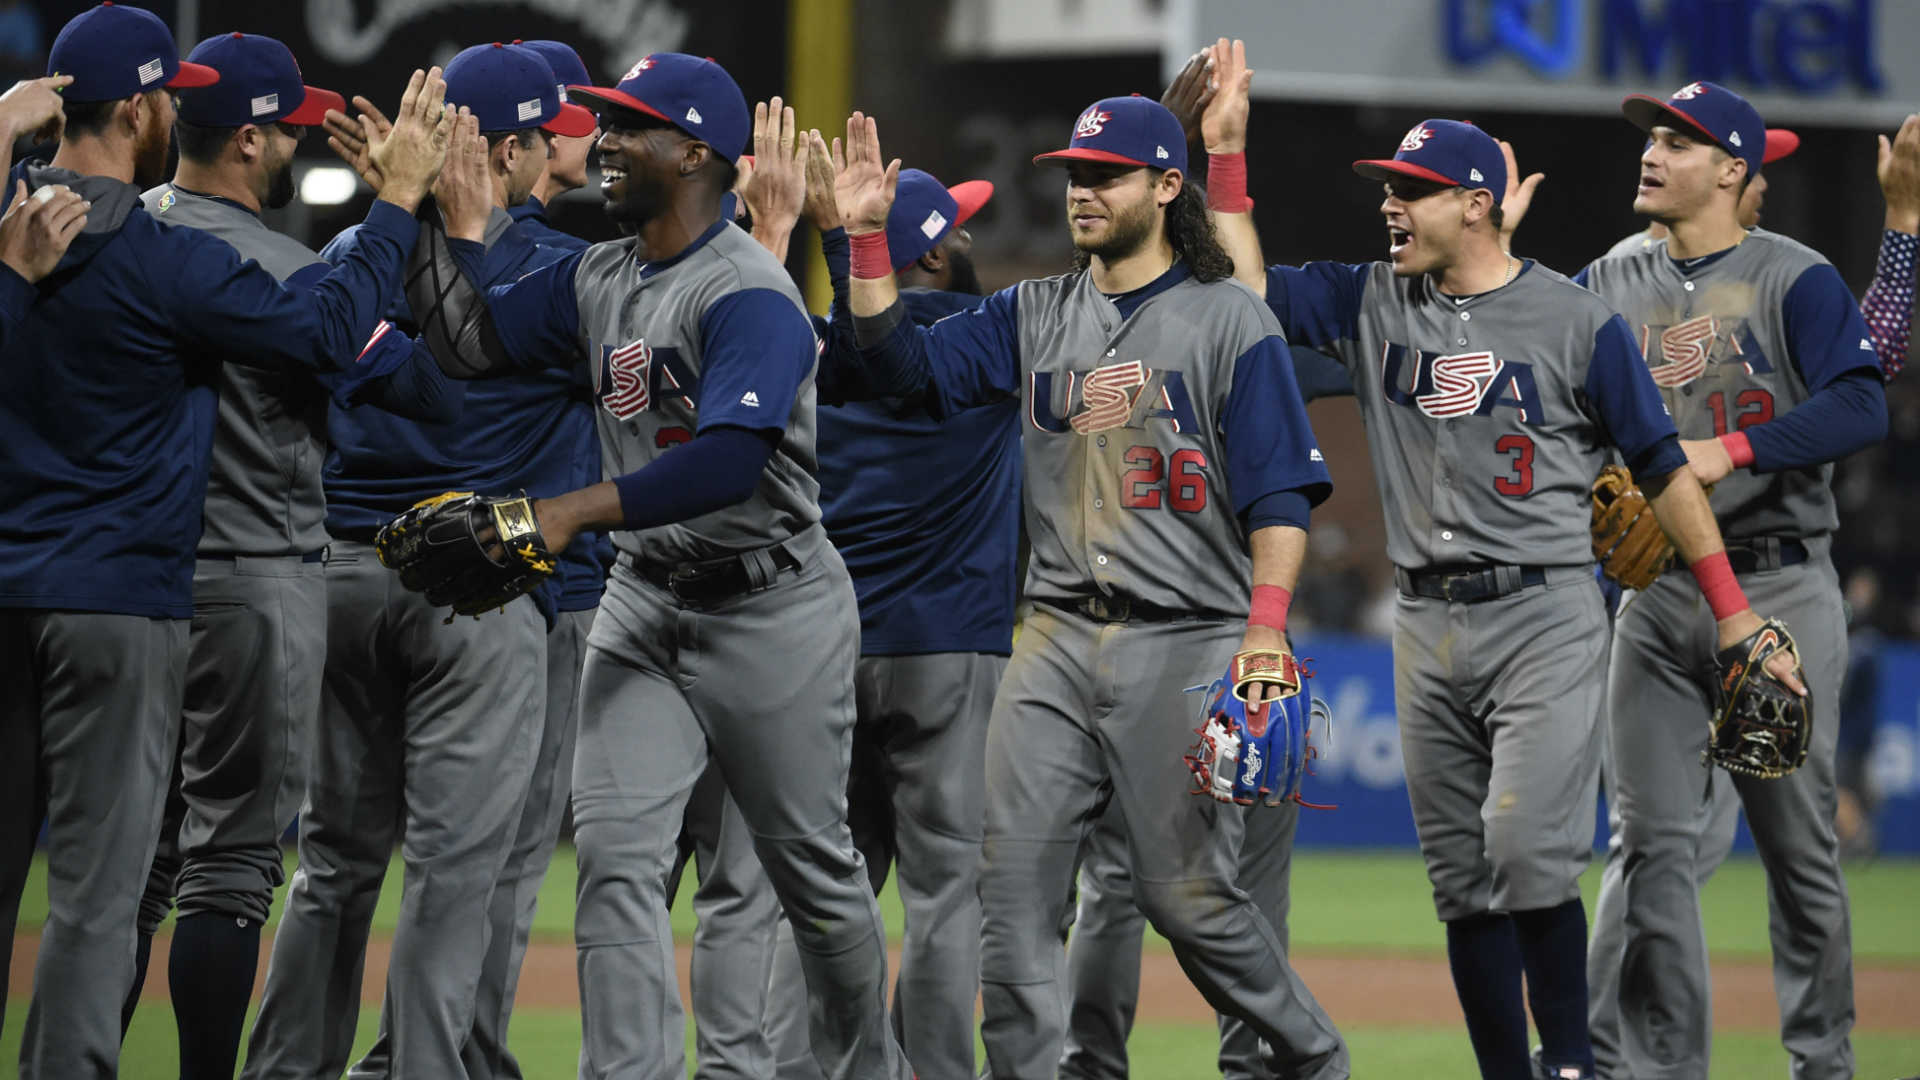 WBC Finals: USA vs. Puerto Rico, Wednesday 3/22, 8 pm CT